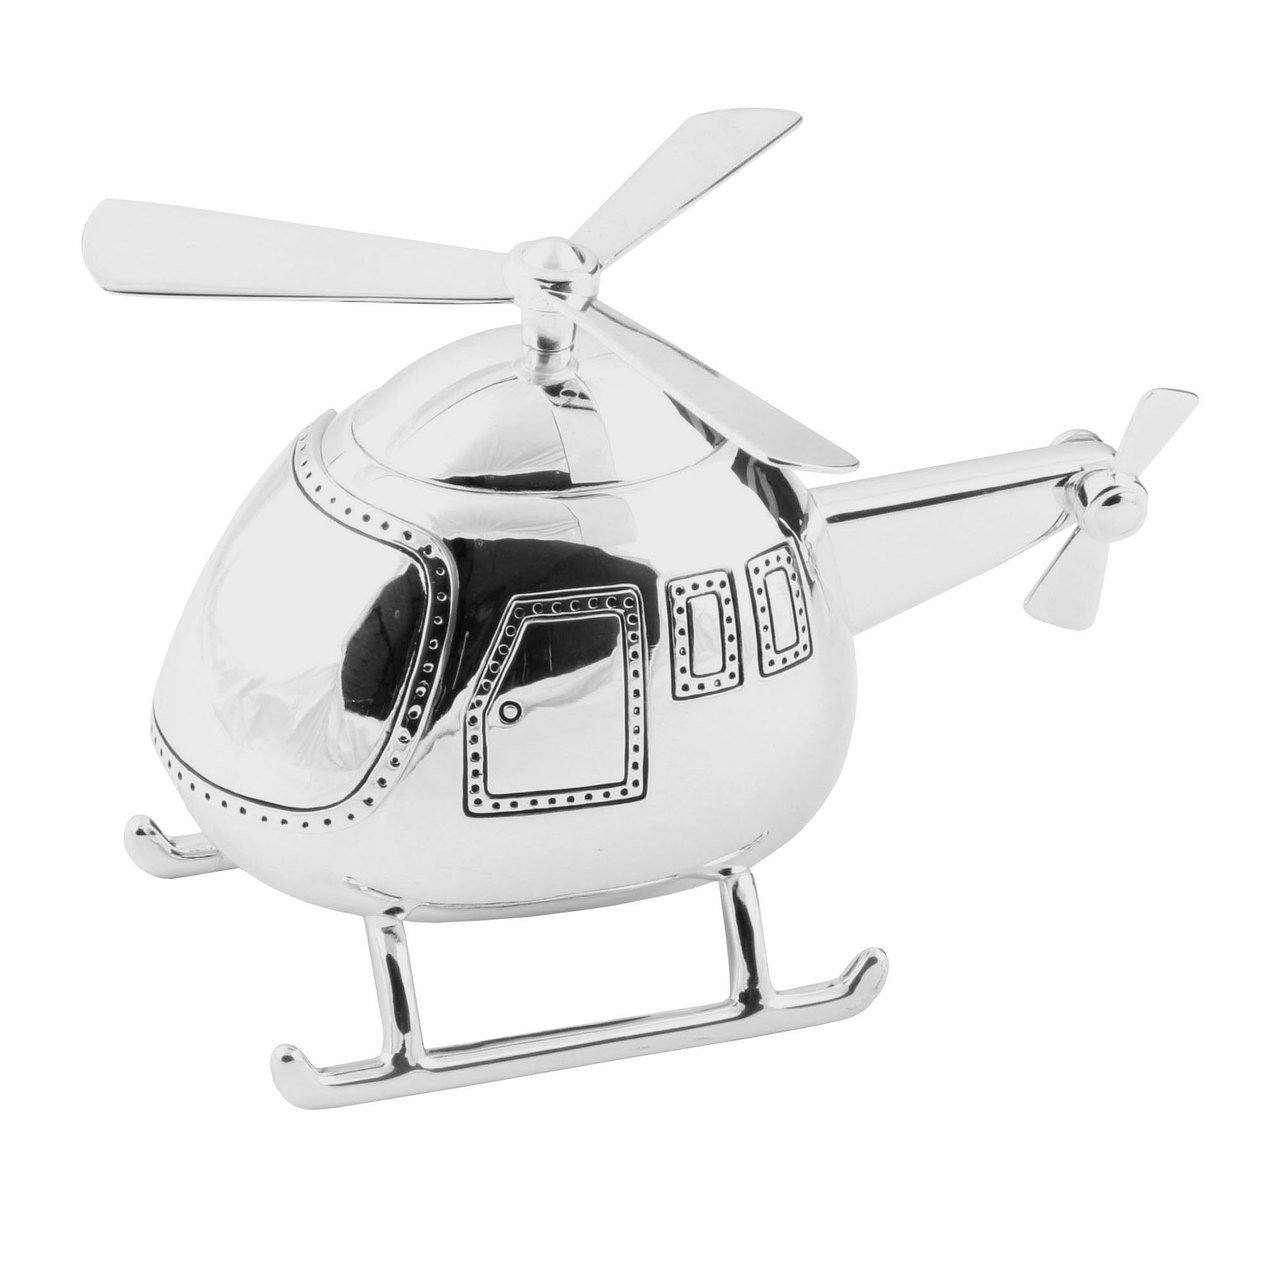 Christening Gifts. Boys Silver Helicopter Money Box BabyCentre 208L 56577868639